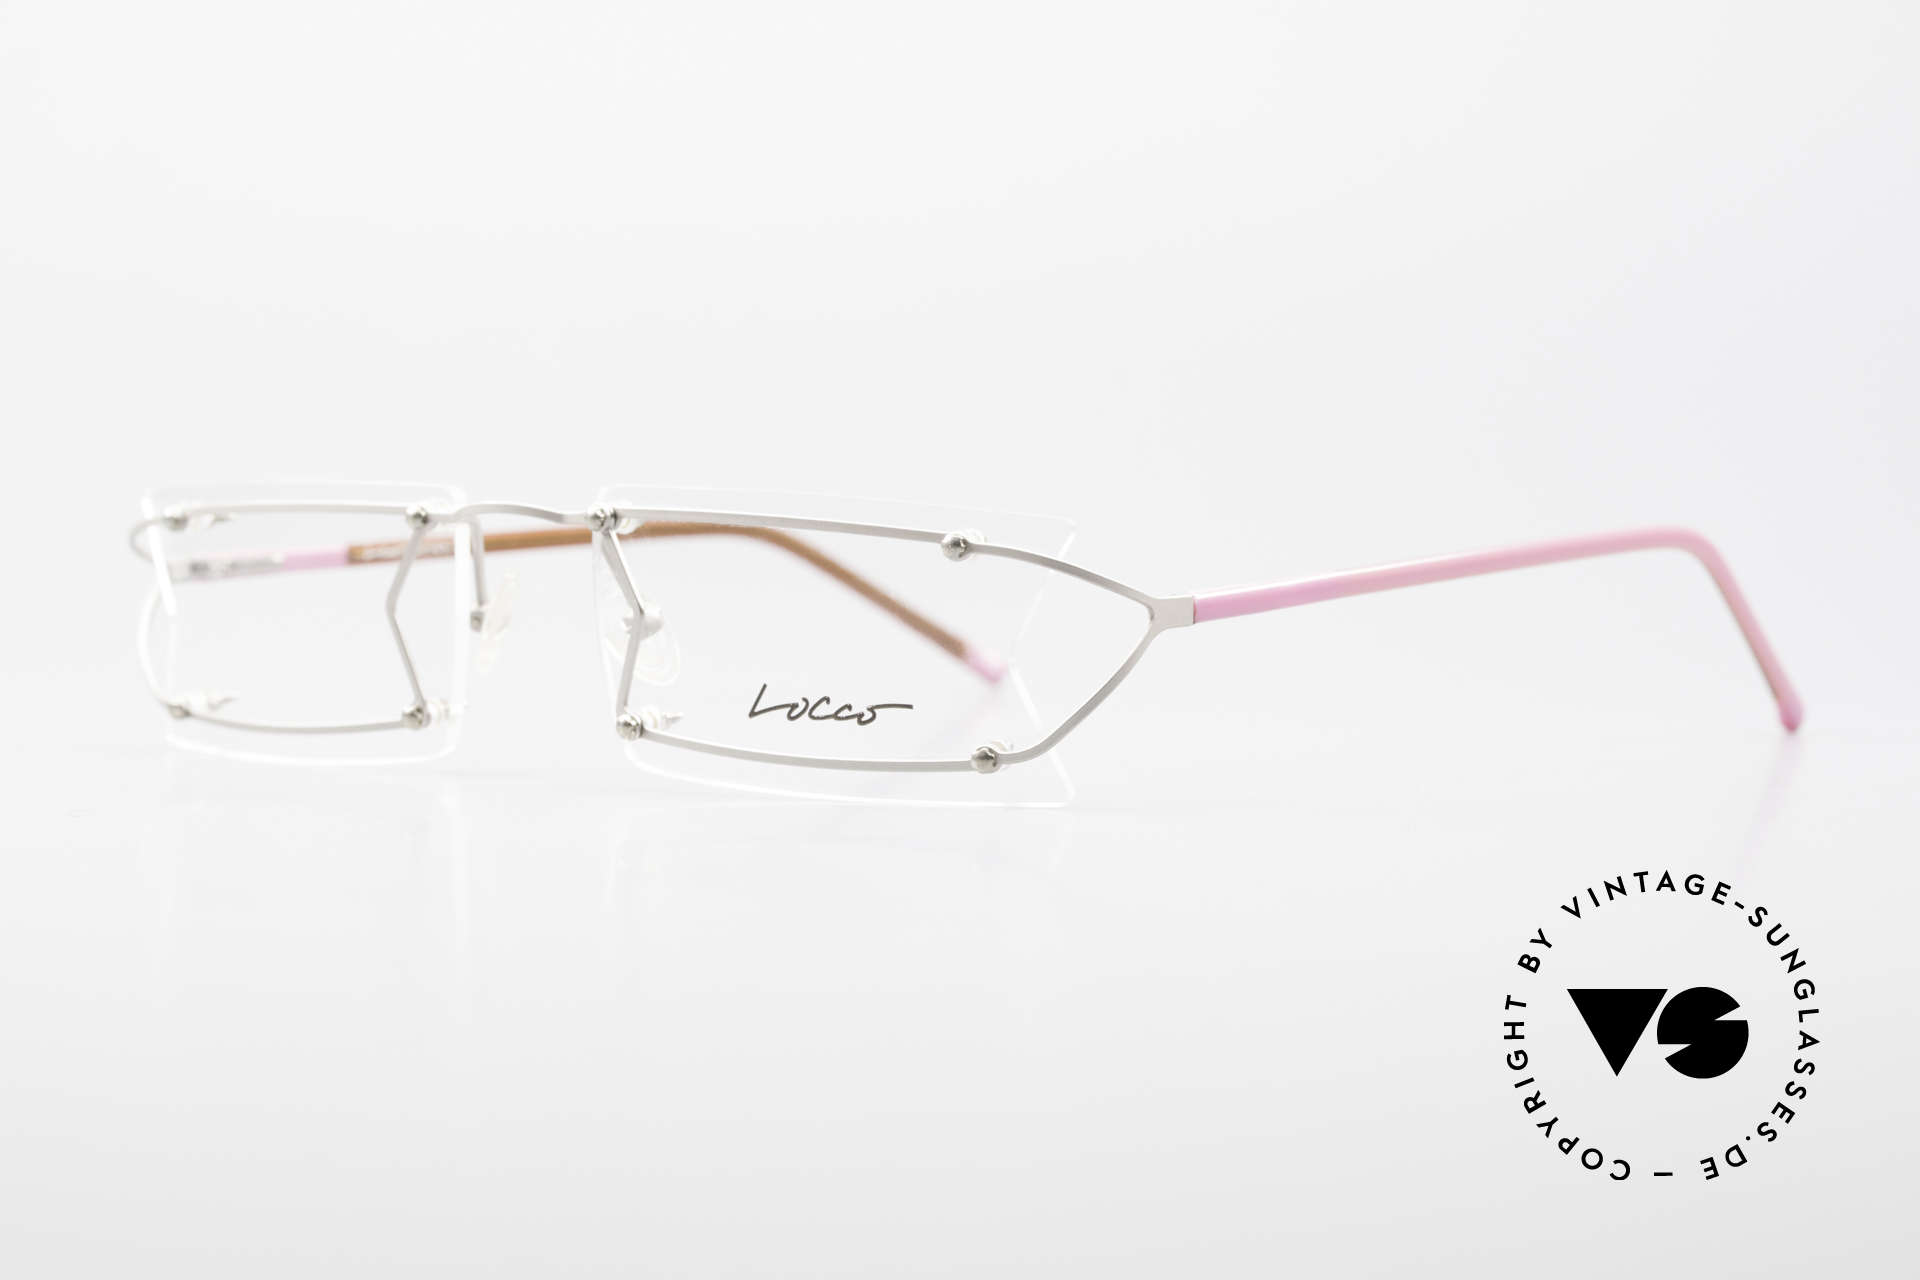 """Locco Pinot Crazy Designer Eyeglasses 90's, made for individualists and all """"character heads"""" ;), Made for Men and Women"""